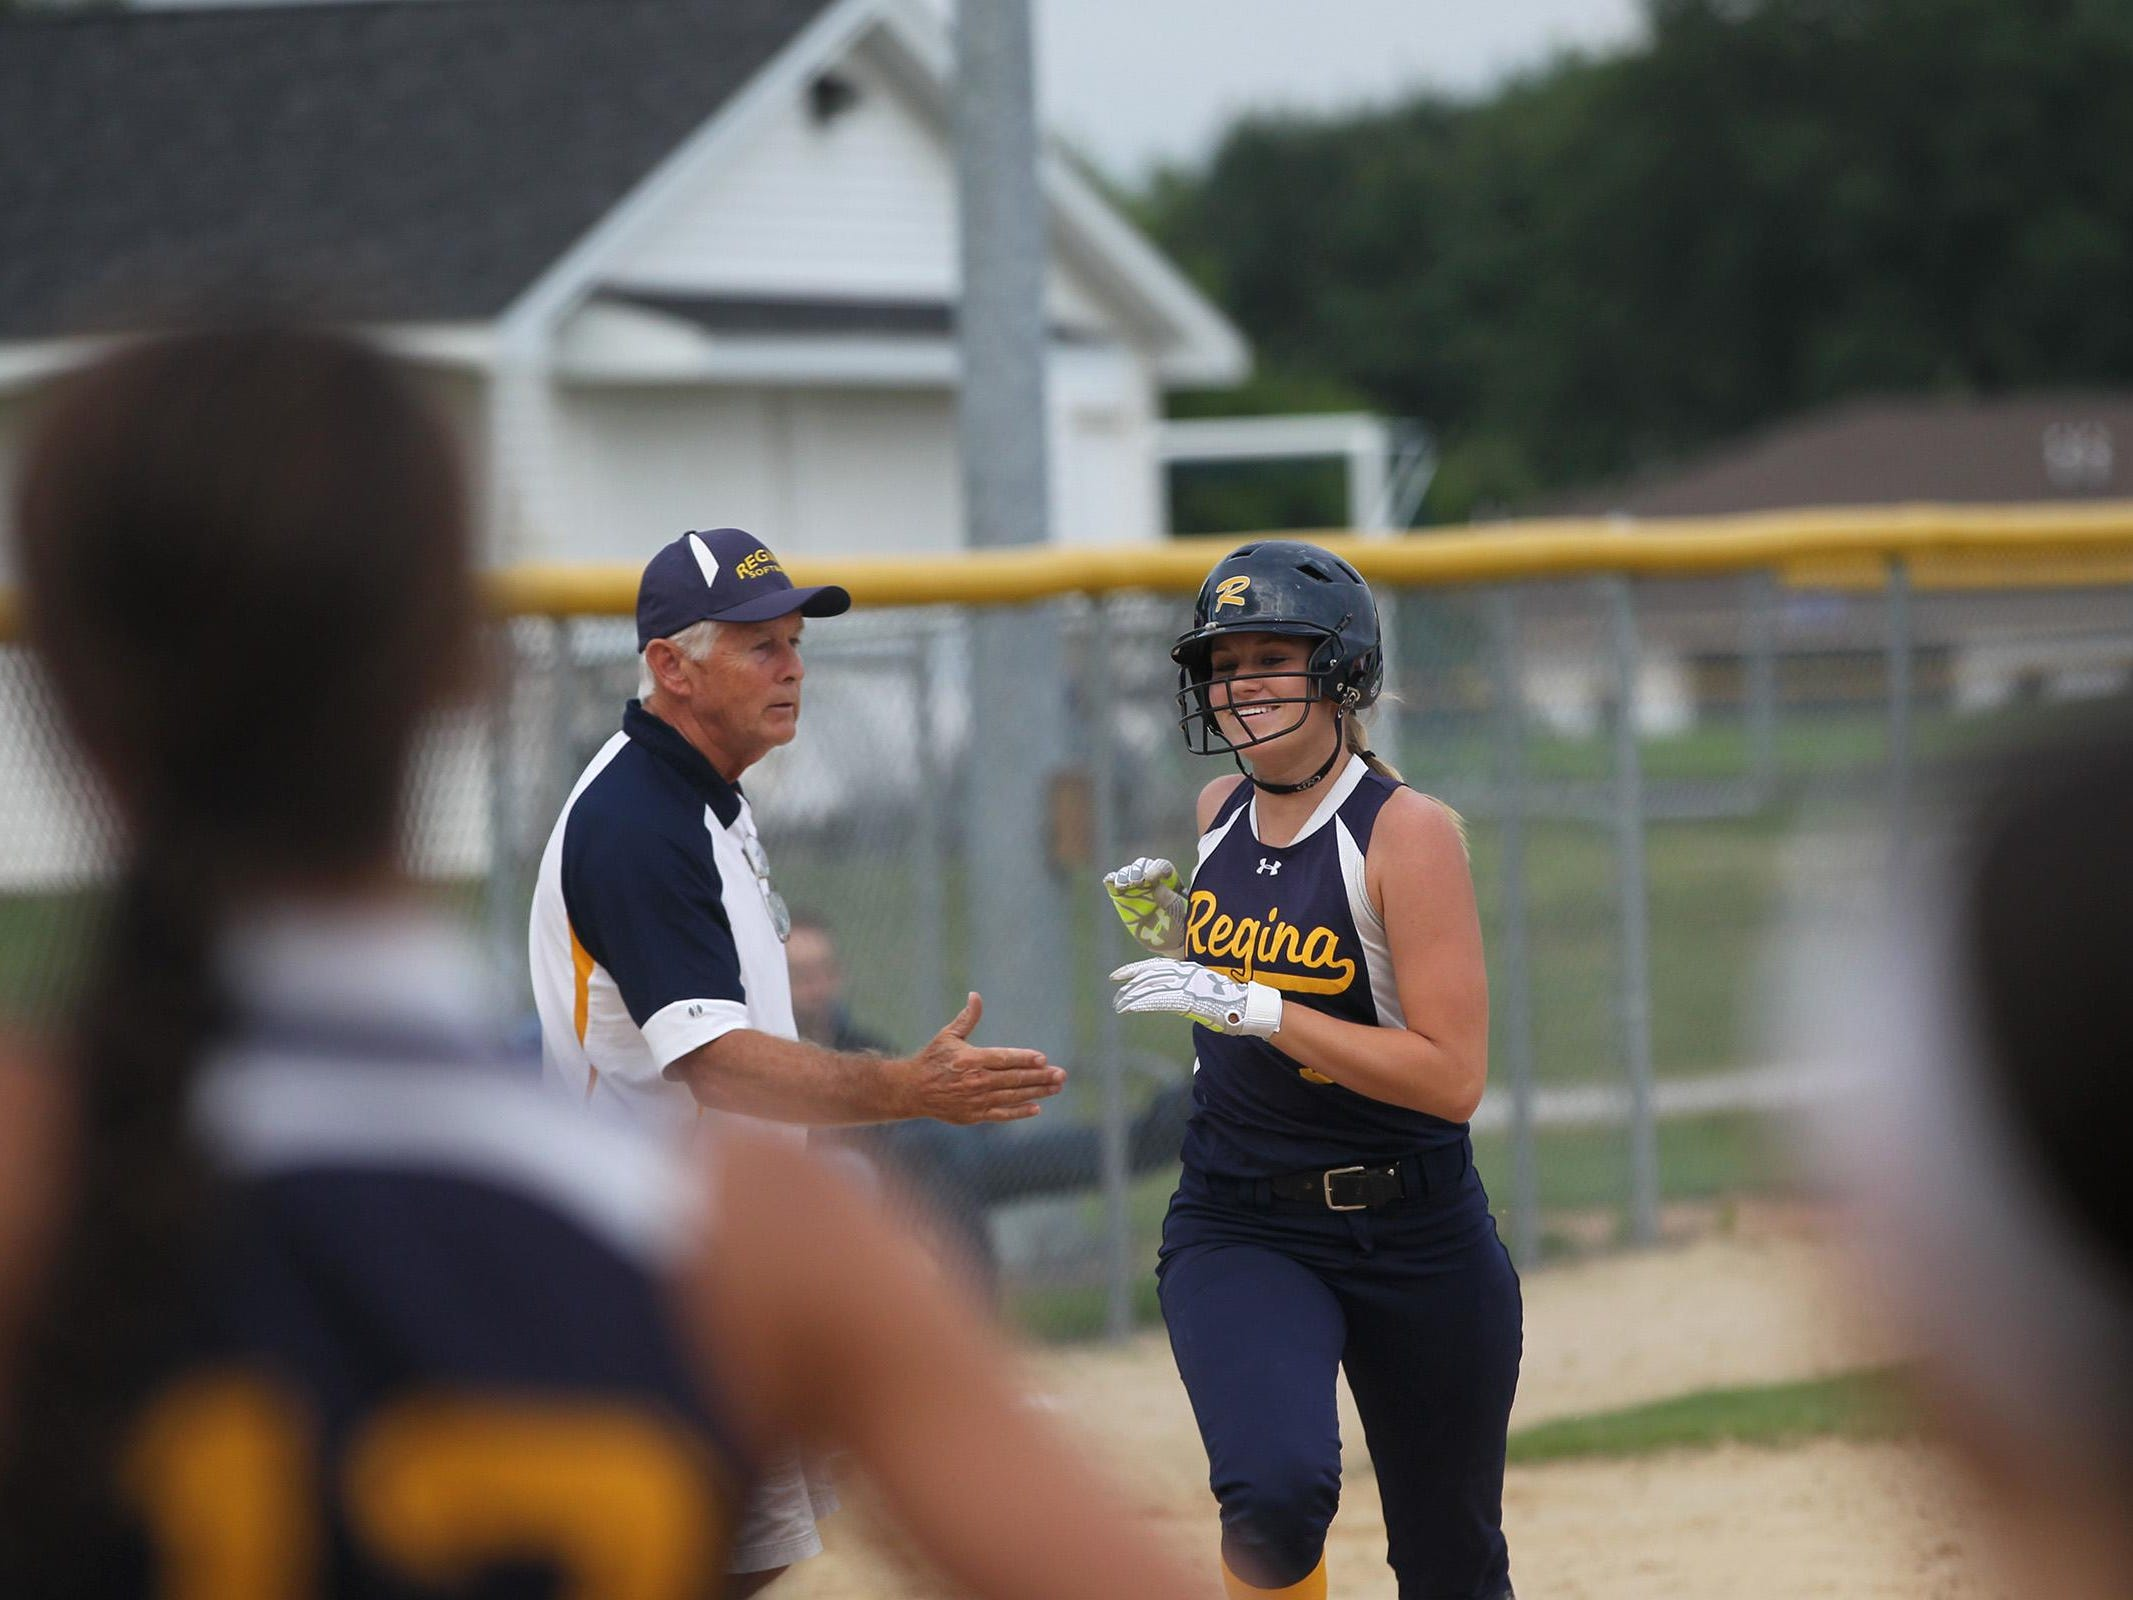 Regina's Kennedy Brown smiles as she runs in for a home run during the Regals' game against Columbus on Wednesday, July 8, 2015. David Scrivner / Iowa City Press-Citizen